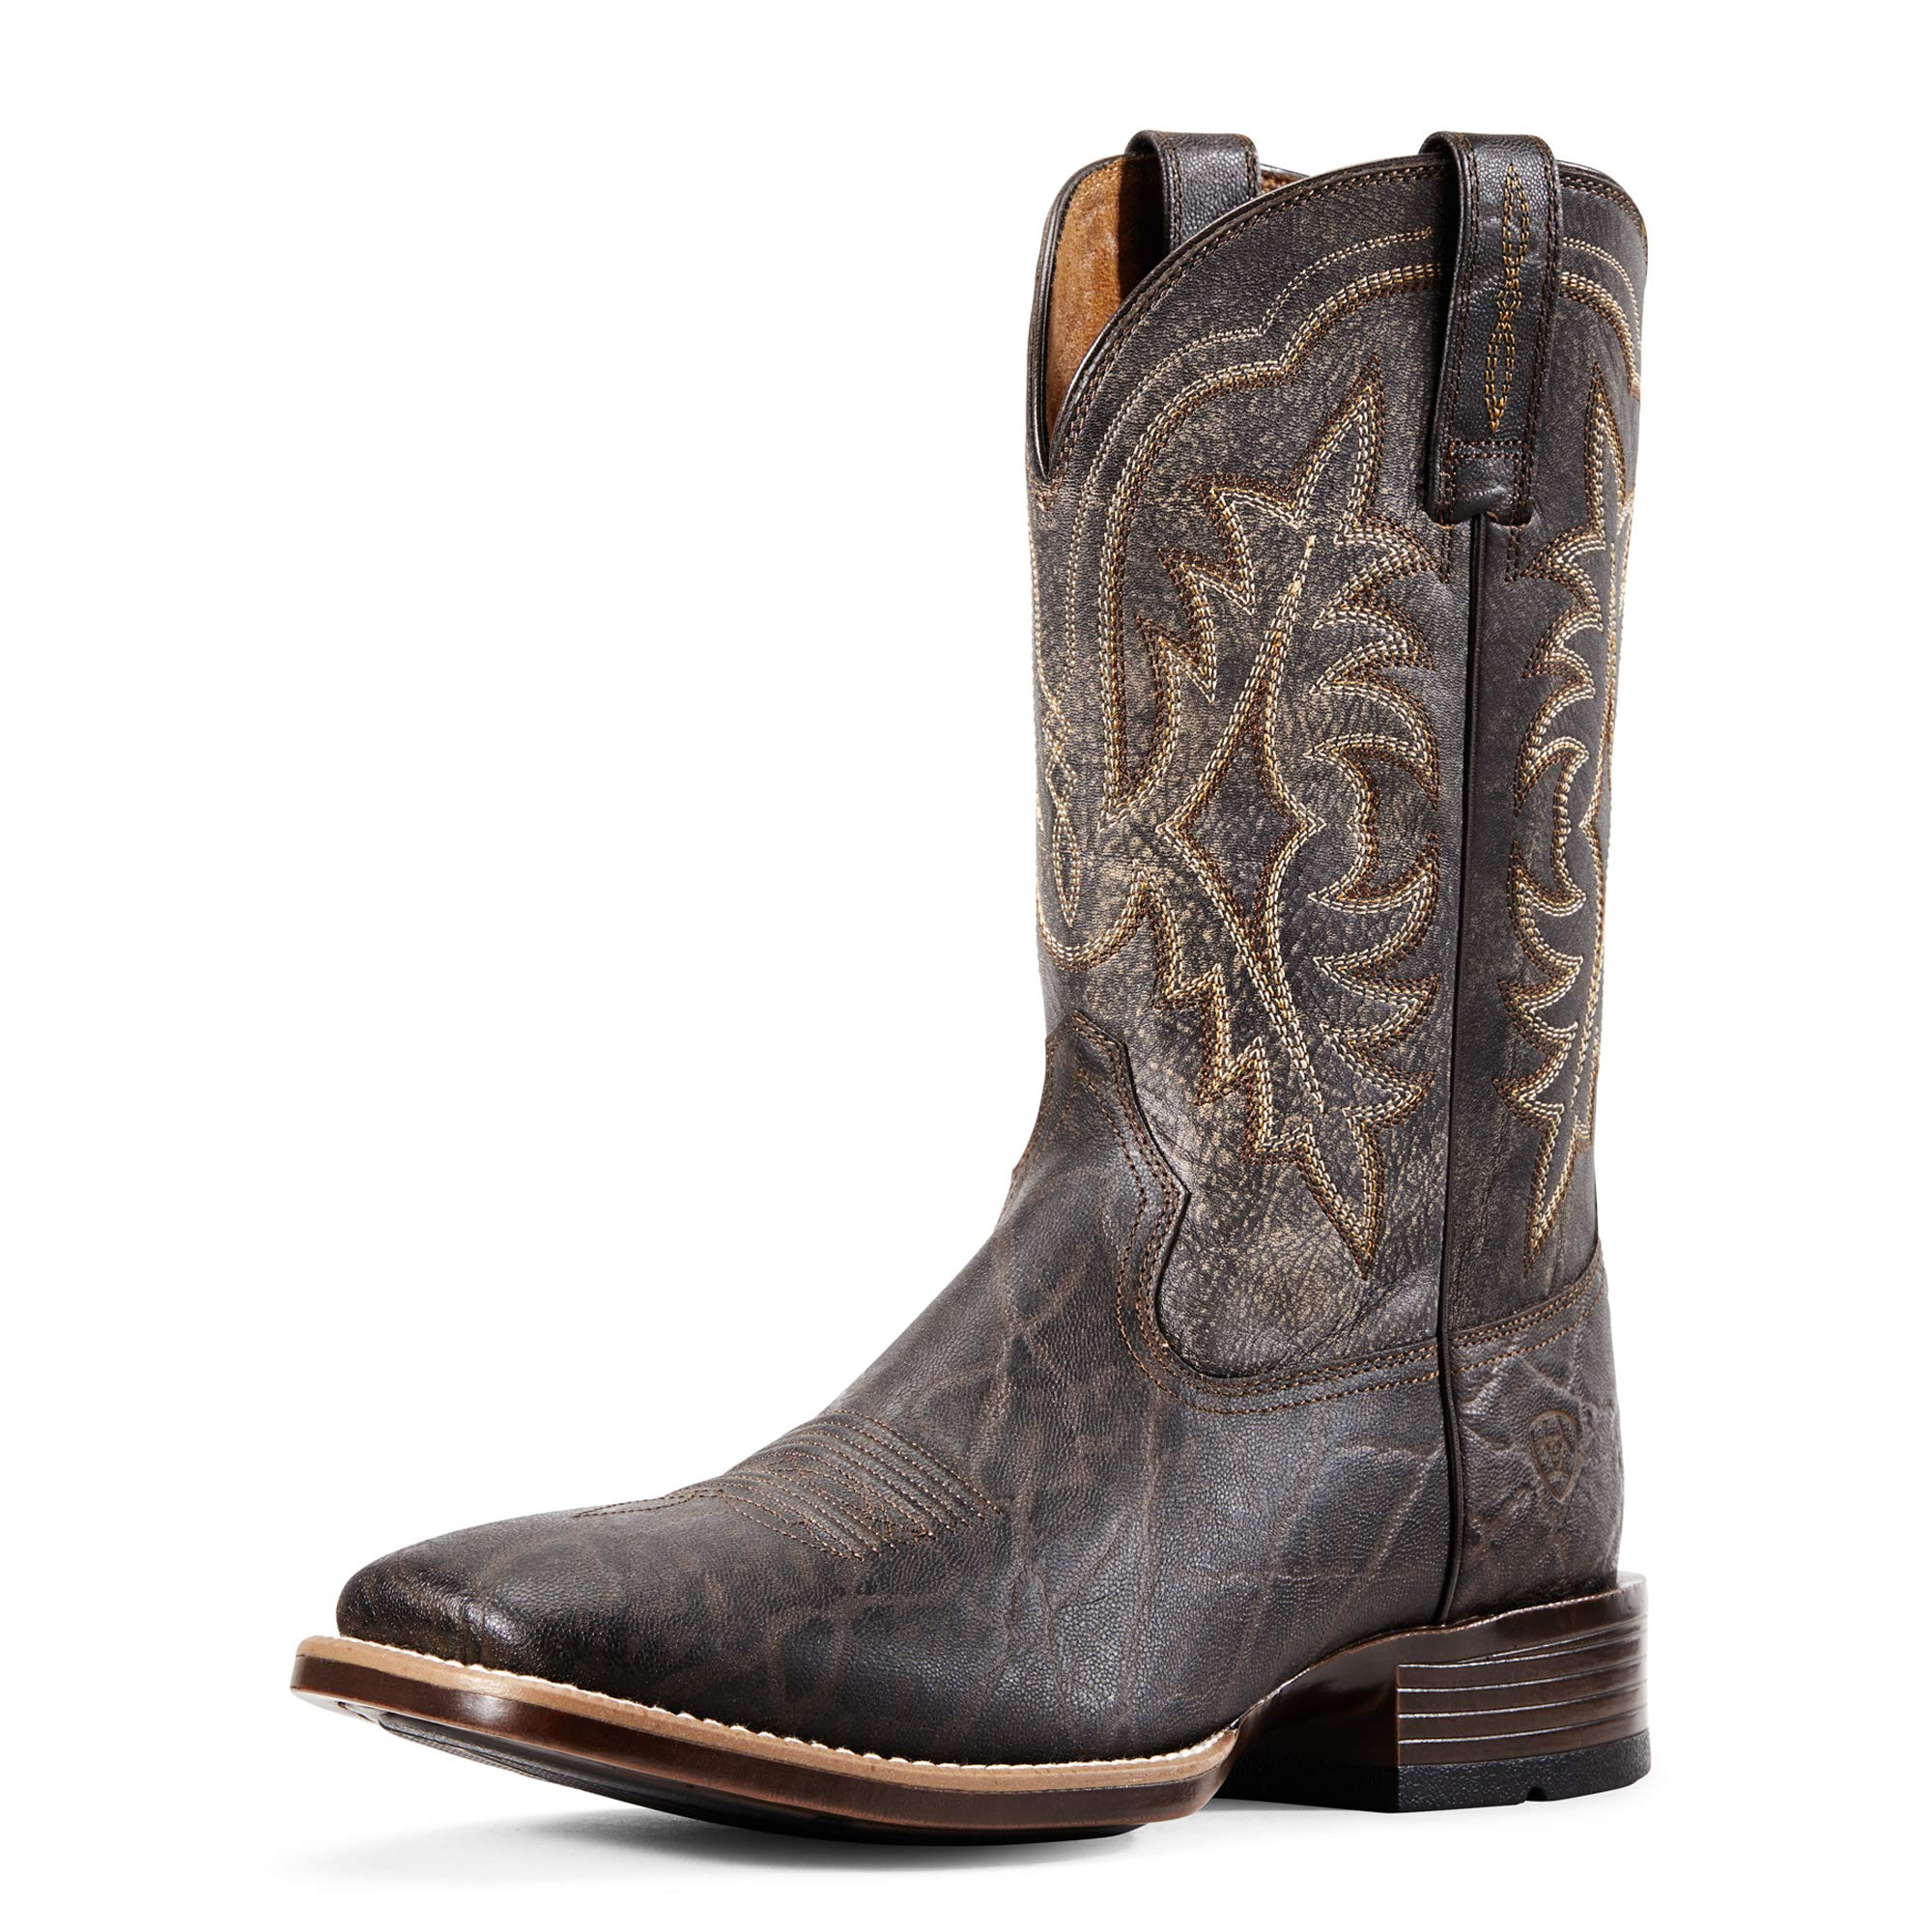 ARIAT Men's Ryden Ultra Western Boot Chocolate Elephant Print Size 10 D/Medium Us by ARIAT